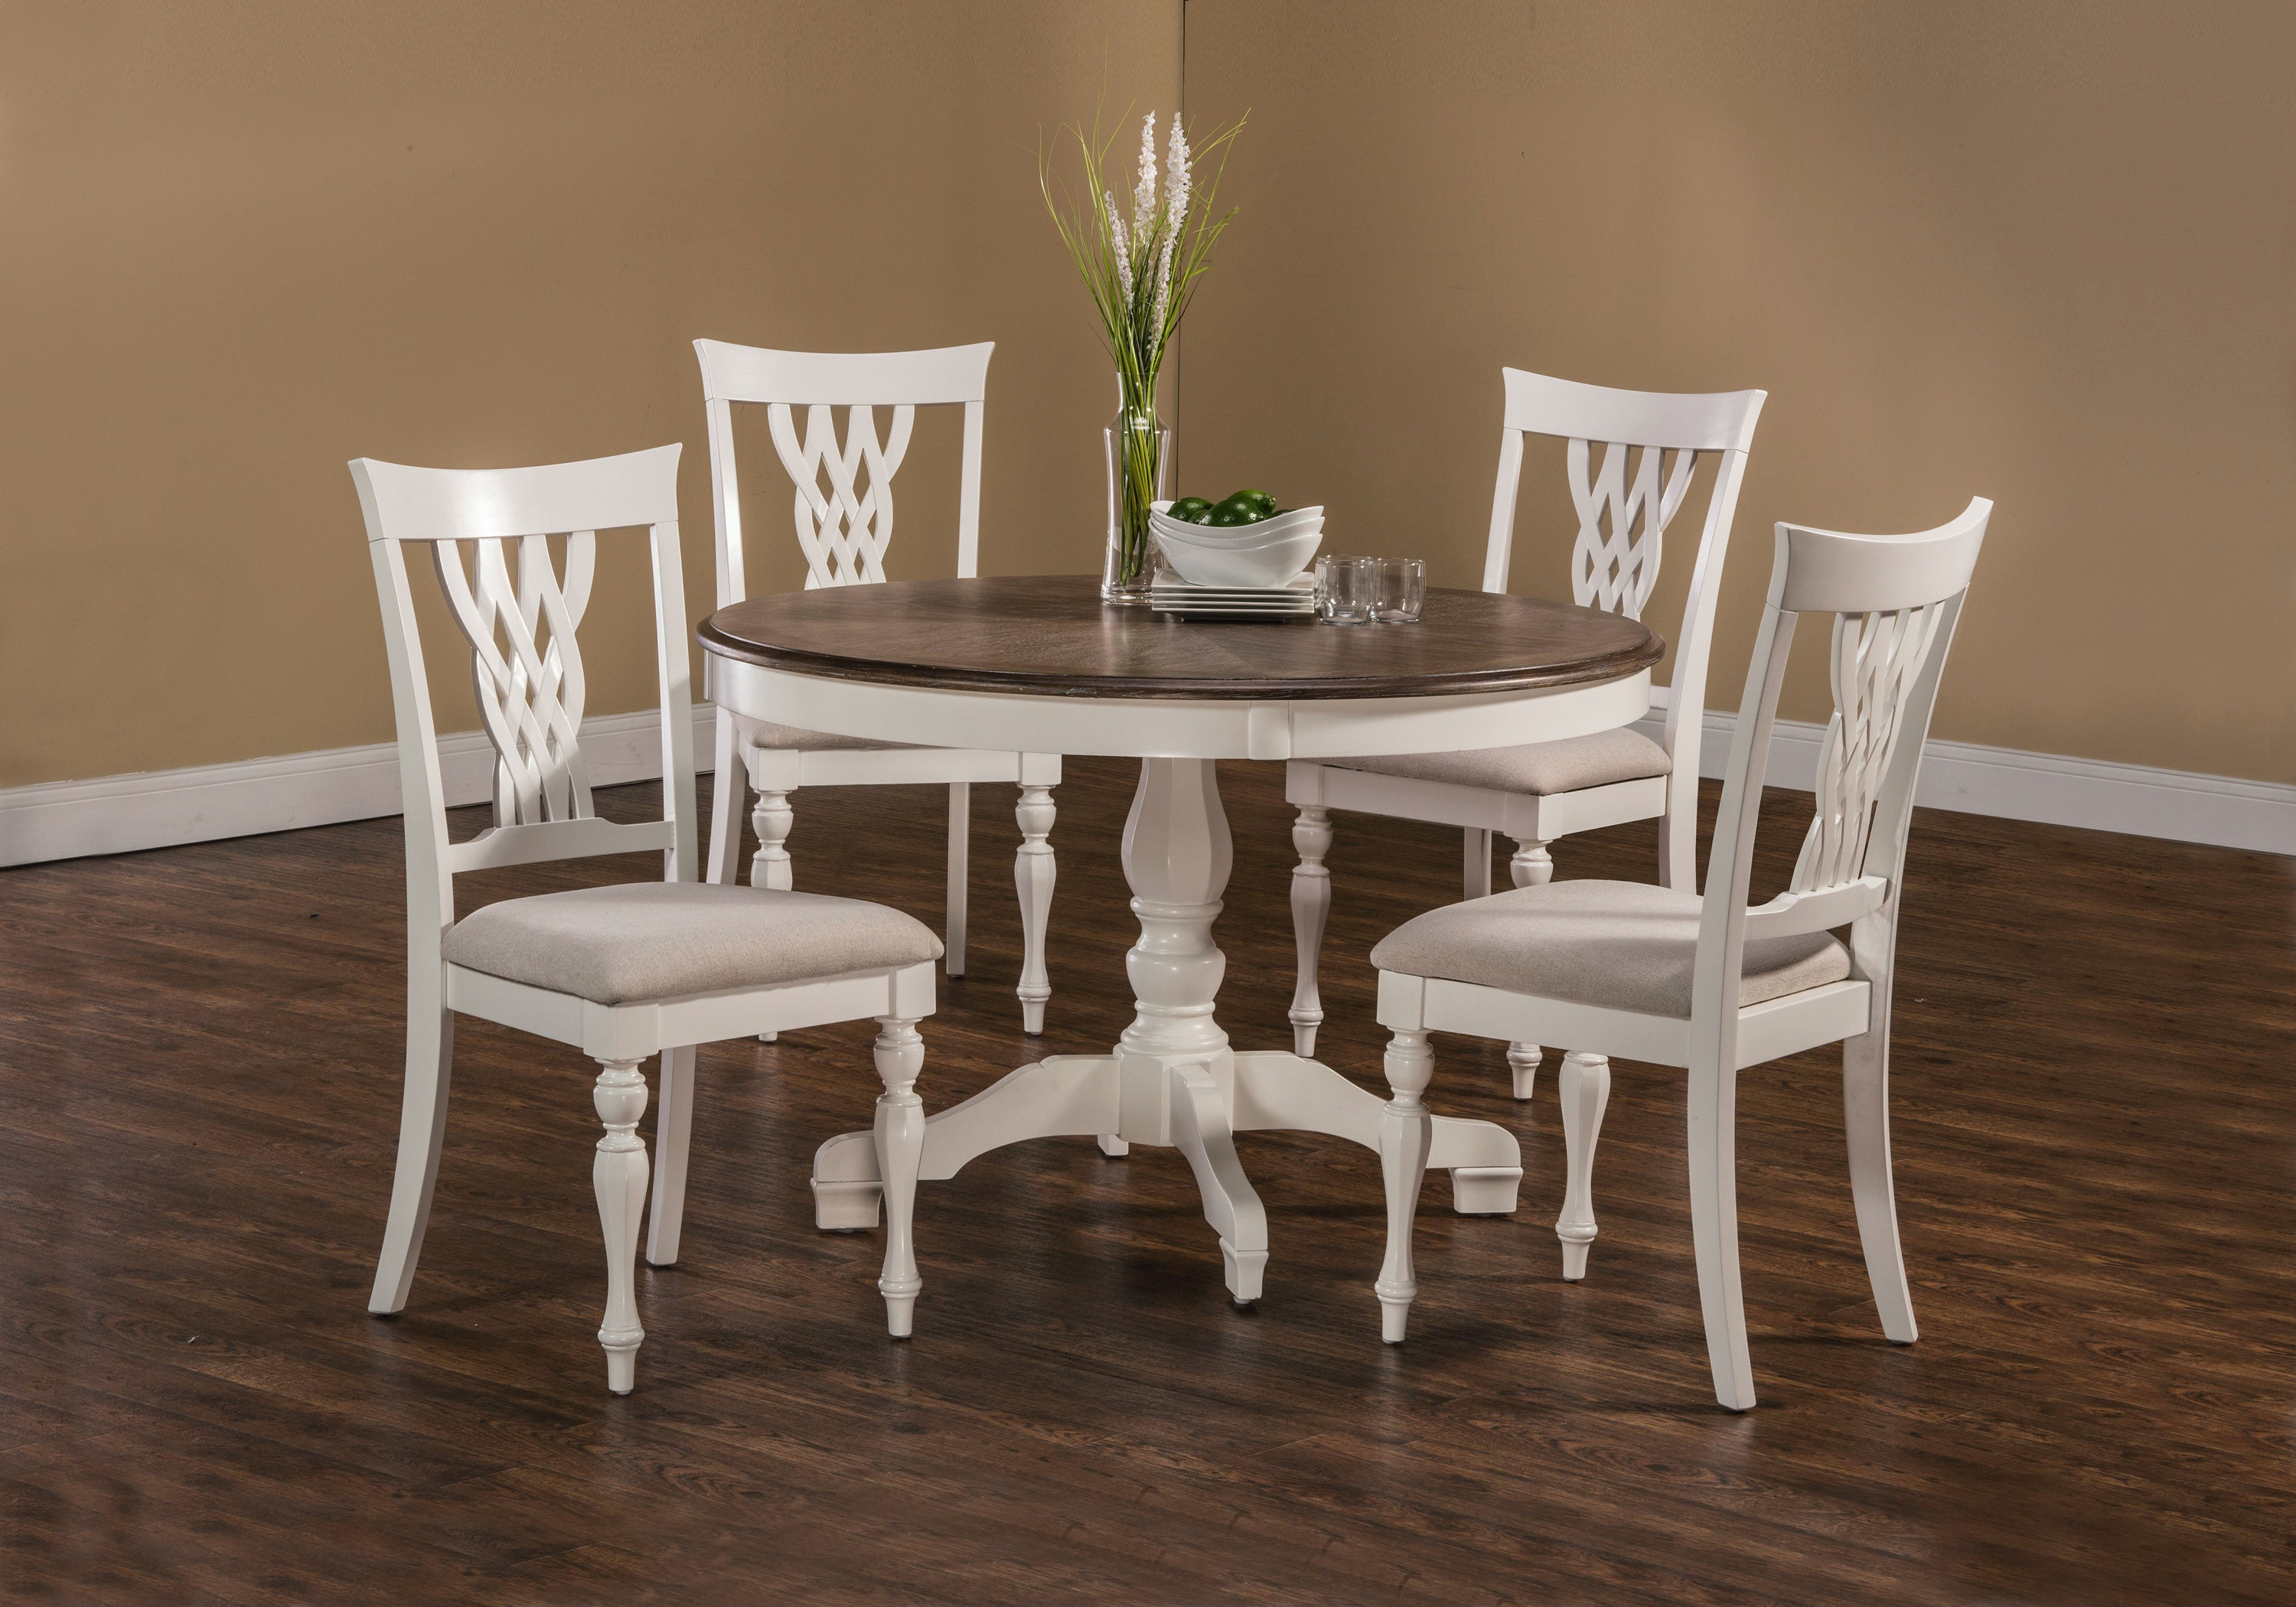 Hillsdale Furniture Dining Room Bayberry/Embassy 5 Piece Round Dining Set    White 5753DTBC   Carol House Furniture   Maryland Heights And Valley Park,  MO